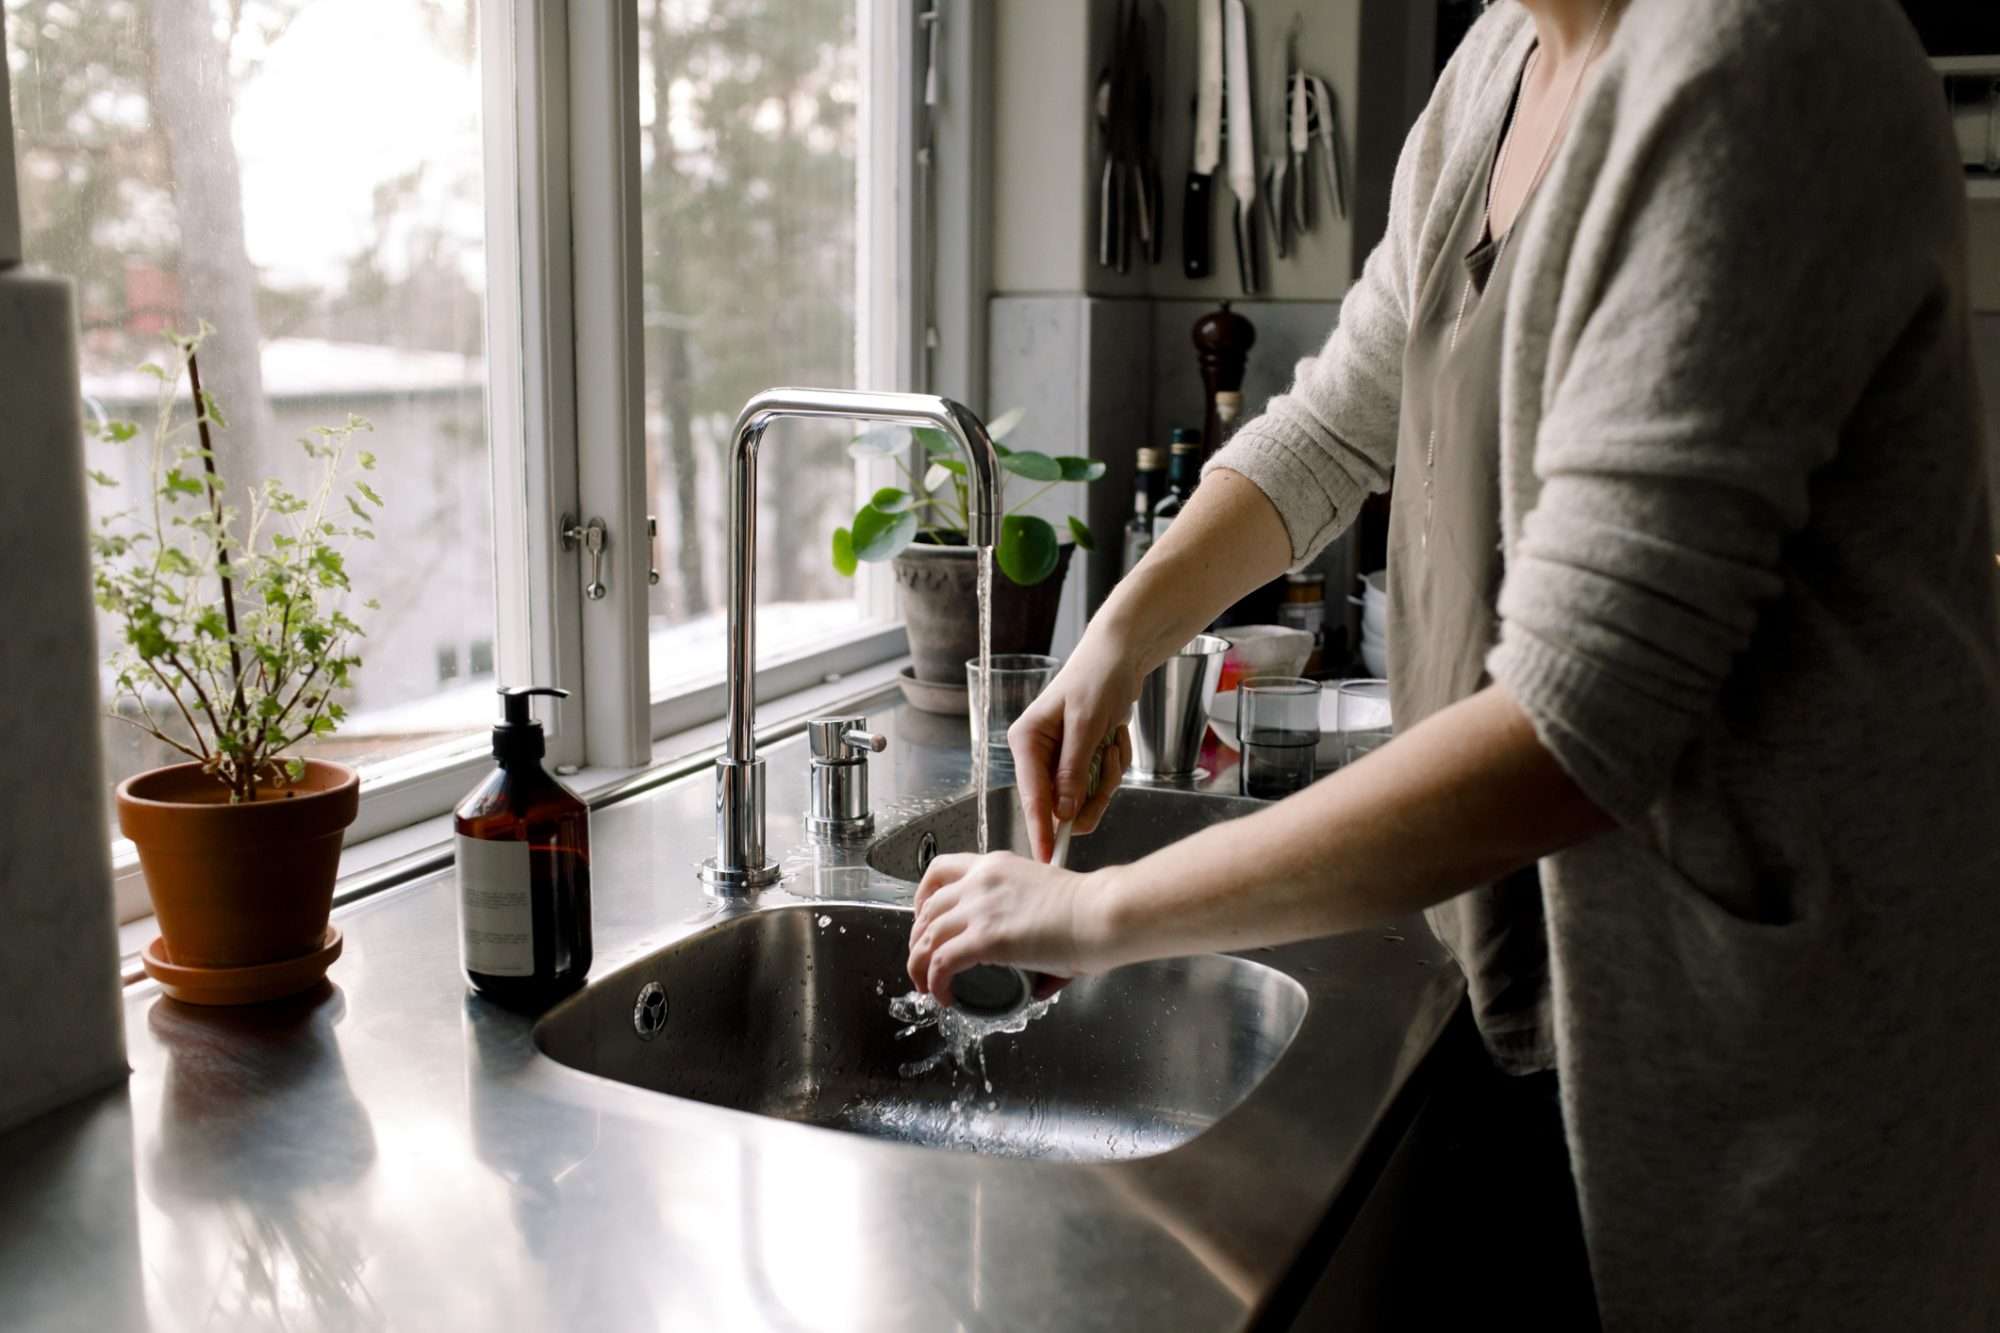 Woman Washing Dishes at Sink